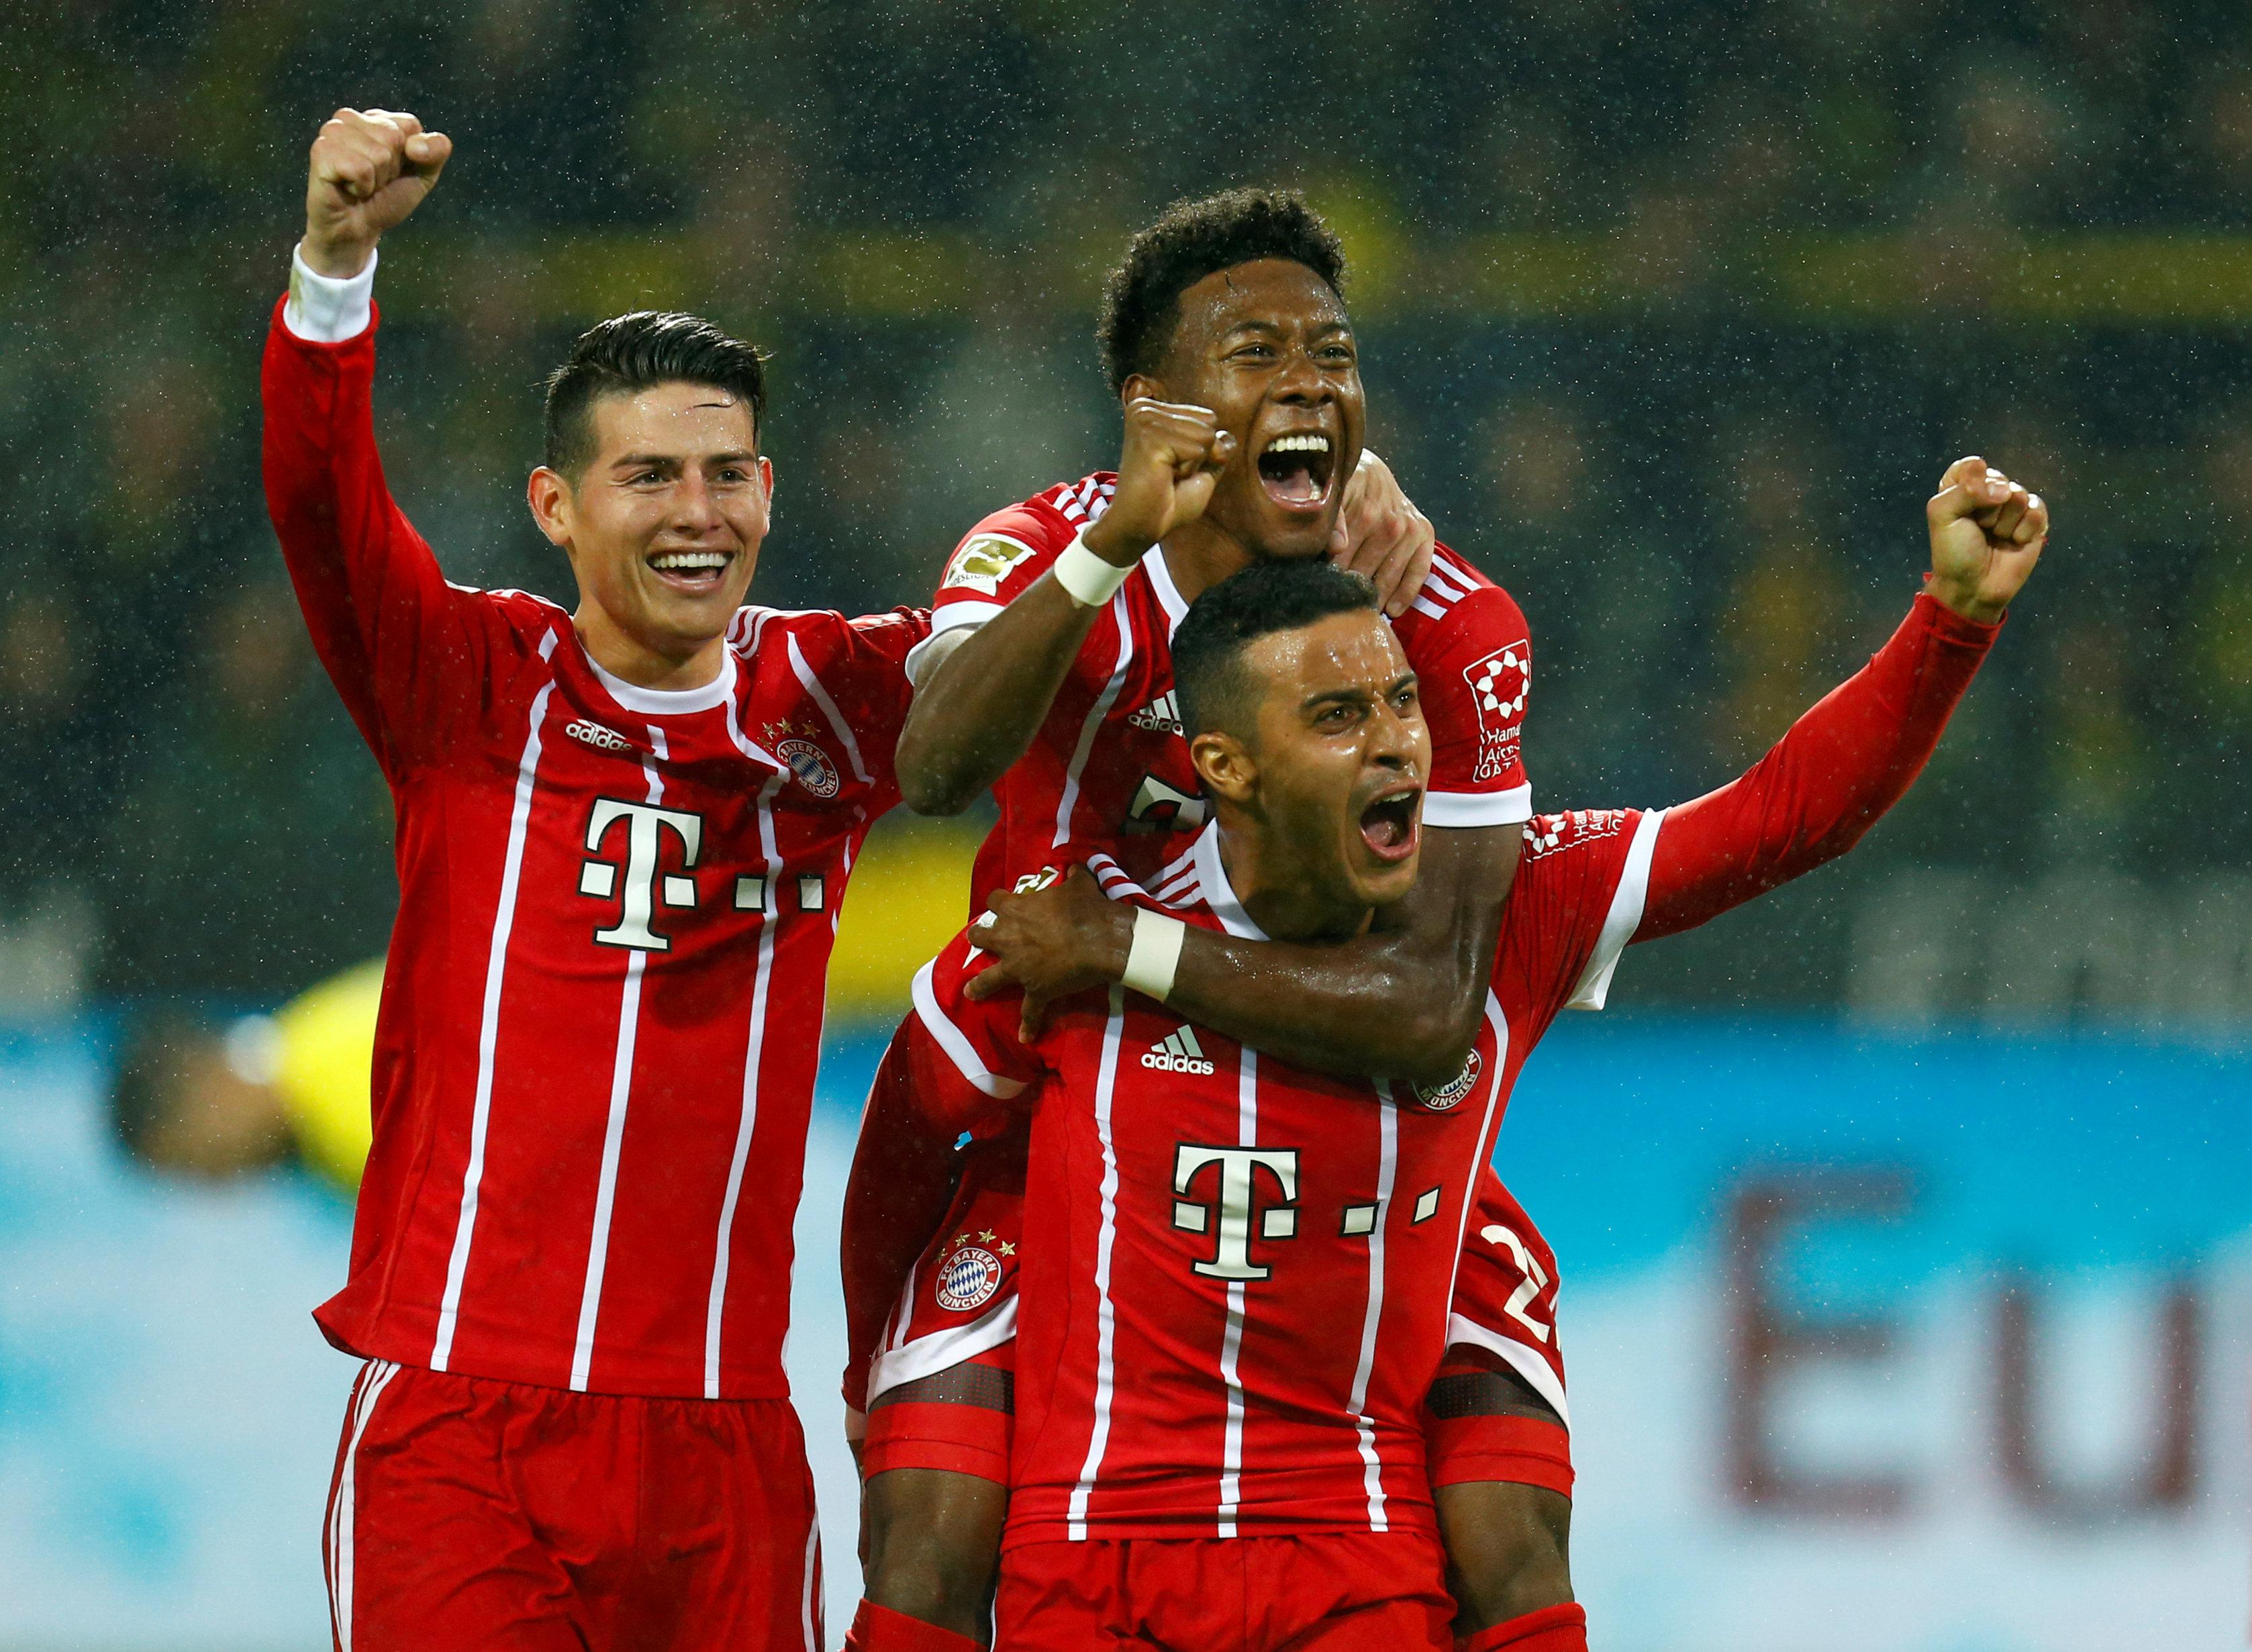 Bayern were victorious over their great rivals